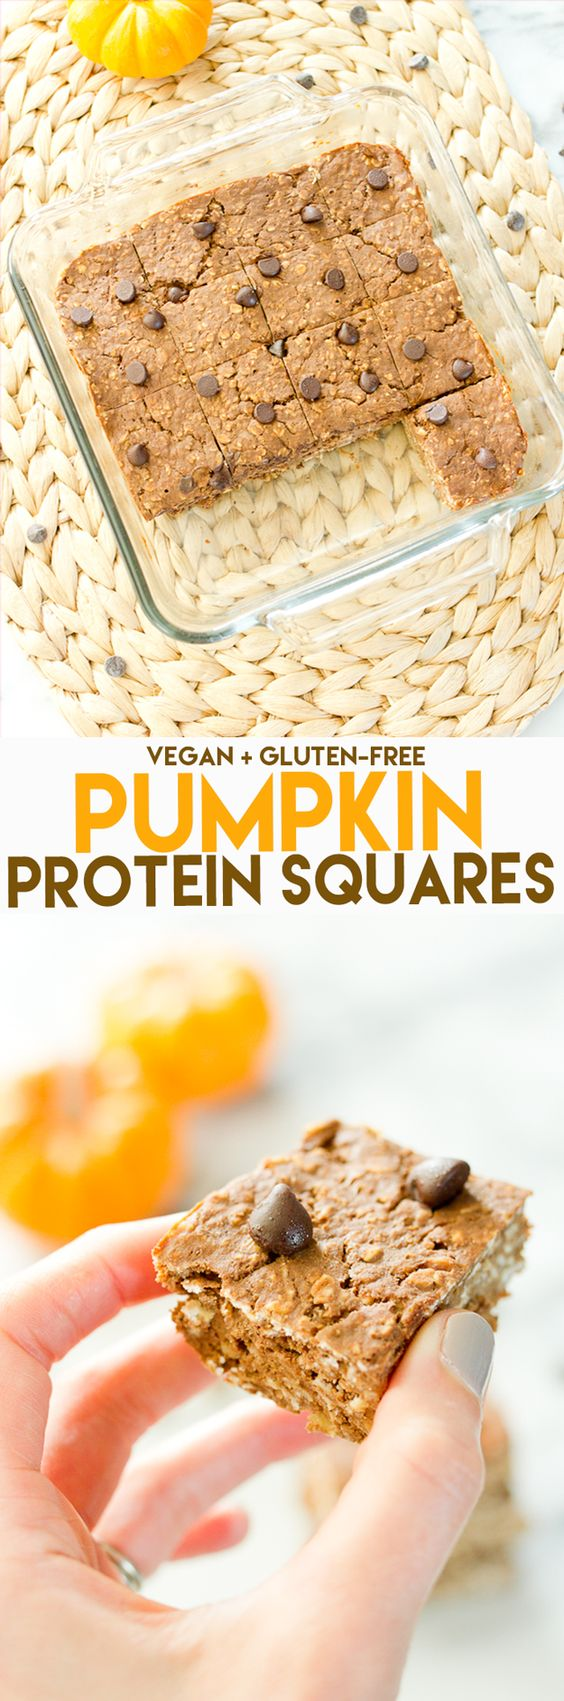 Pumpkin Protein Bars // 60 cals, 5 grams of protein, 7 grams of carbs #vegan #glutenfree